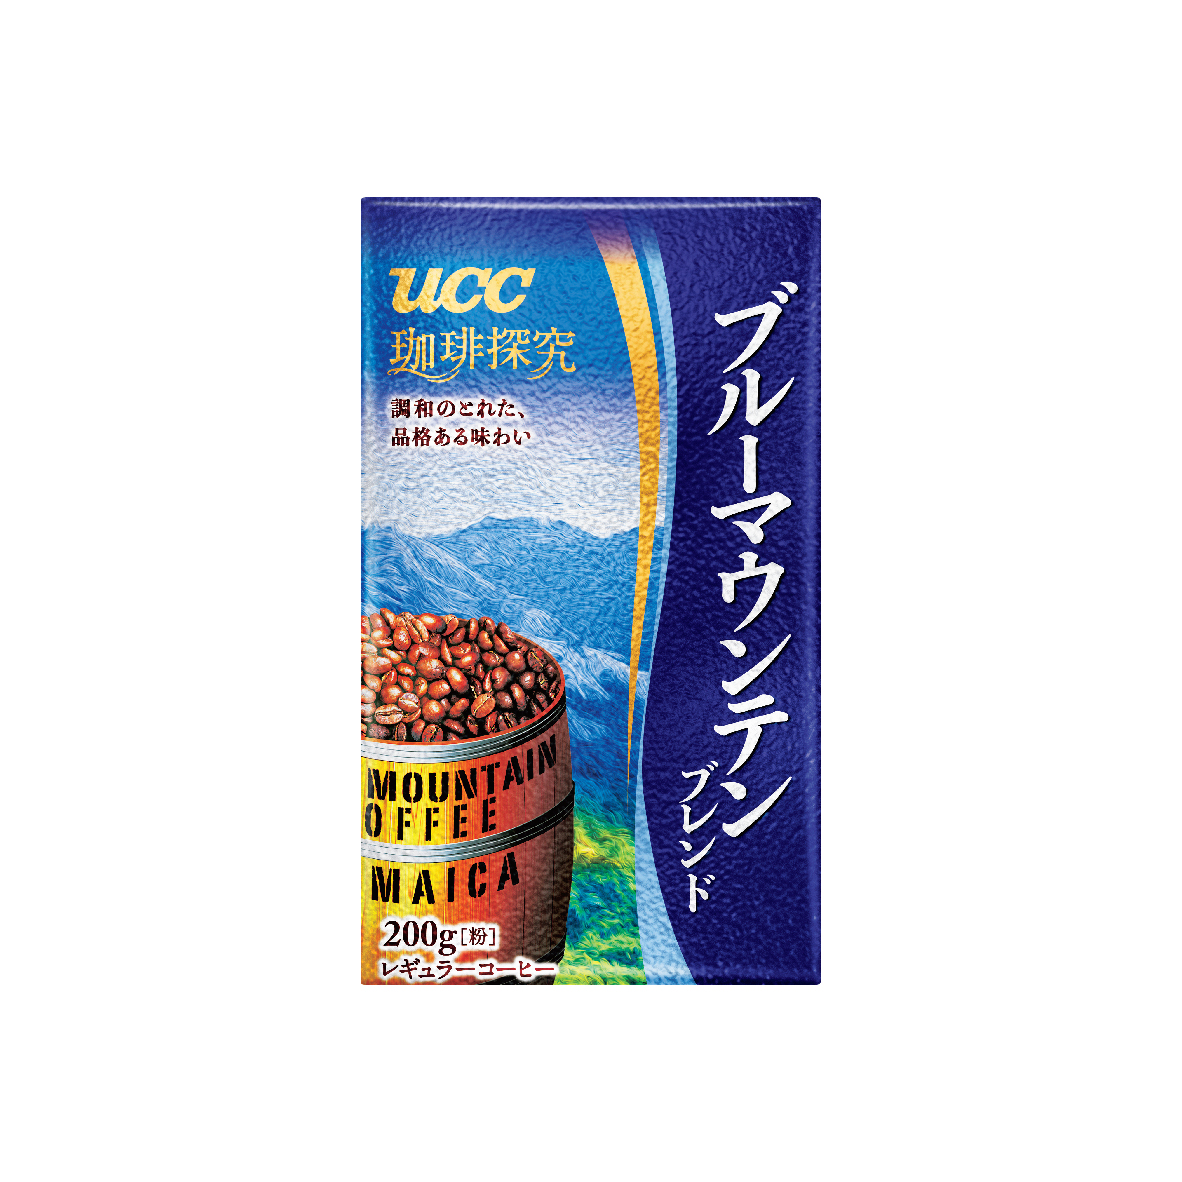 UCC Coffee Exploration Blue Mountain Blend Roasted Coffee